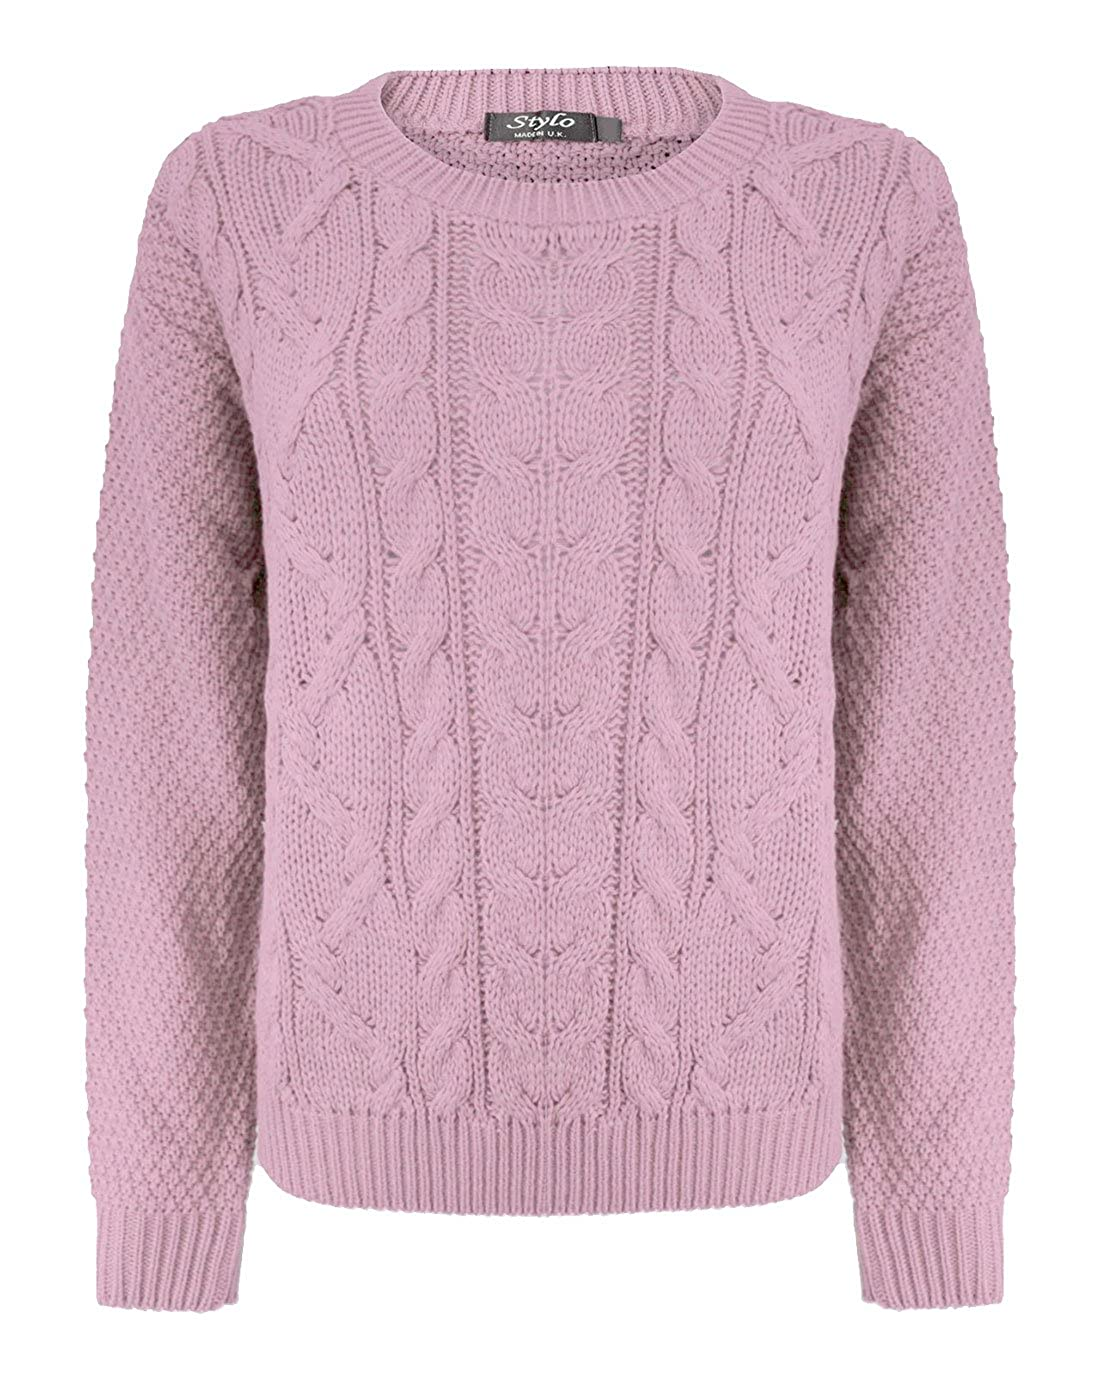 f3d47840a1ea27 HAAS TRADING Womens Cable Knitted Long Sleeves Chunky Crew Neck Jumper  Ladies Cardigan Baggy Sweater  Amazon.co.uk  Clothing